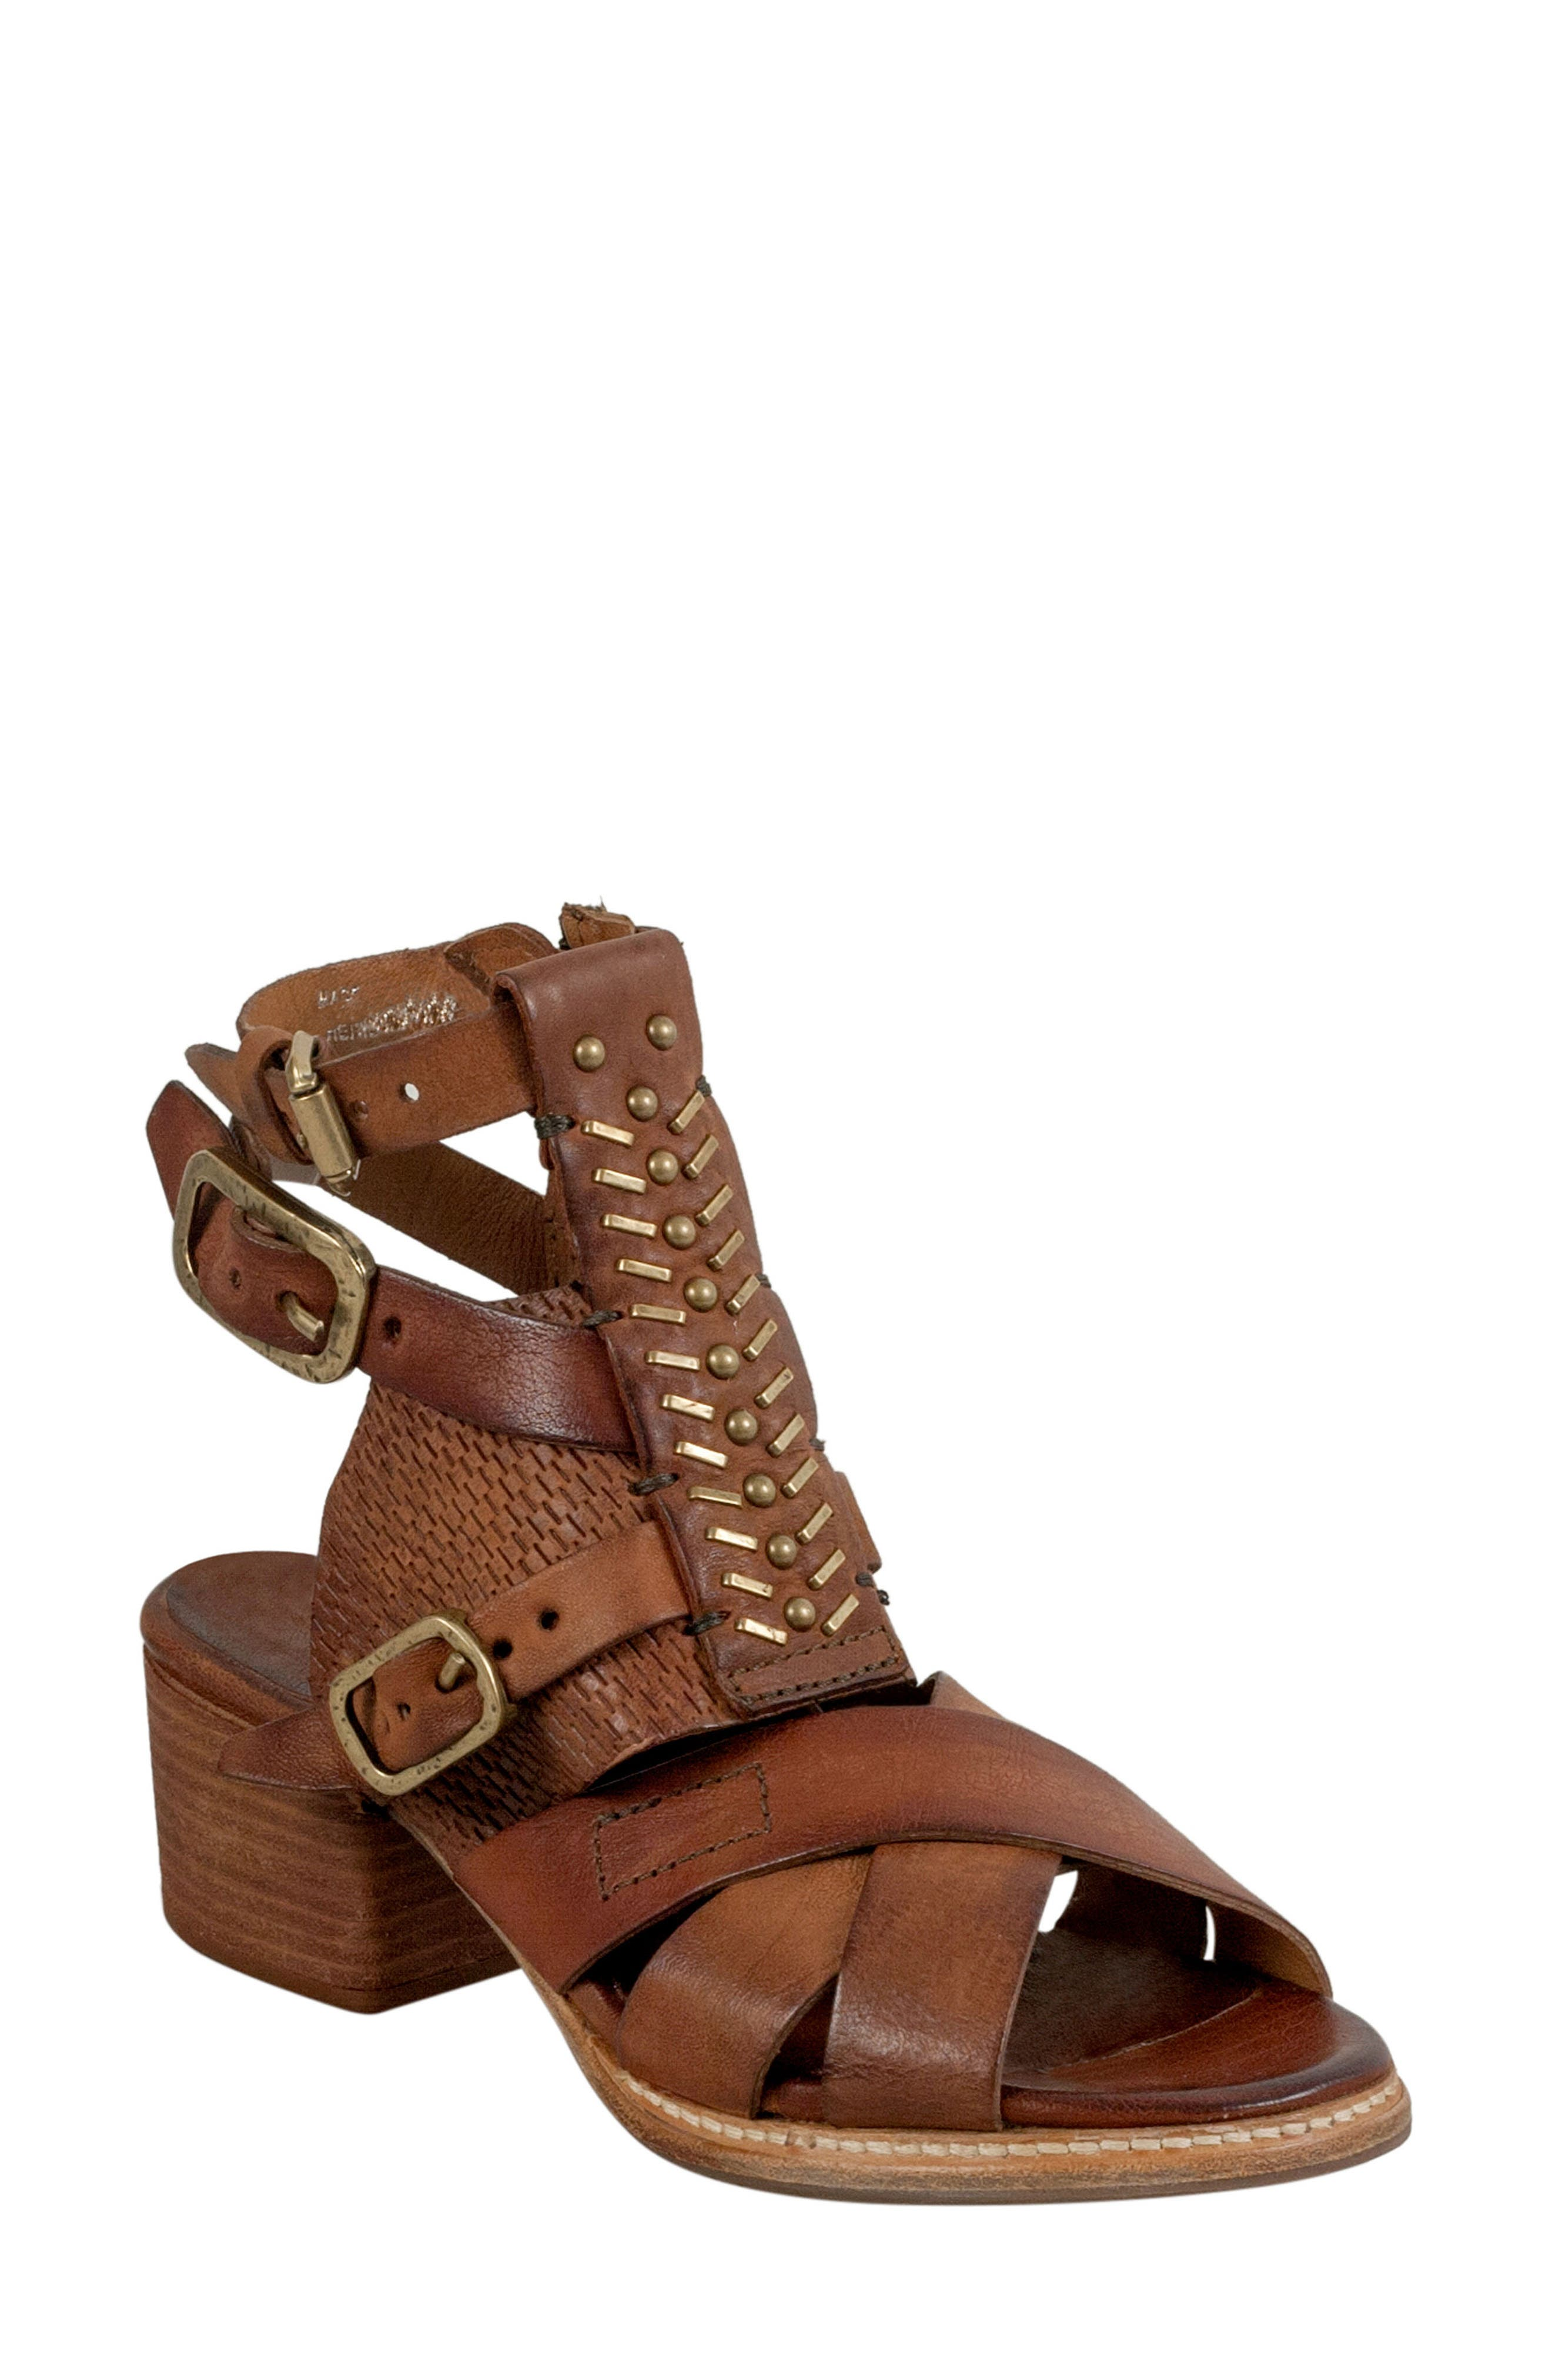 Pennie Gladiator Sandal,                         Main,                         color, Cognac